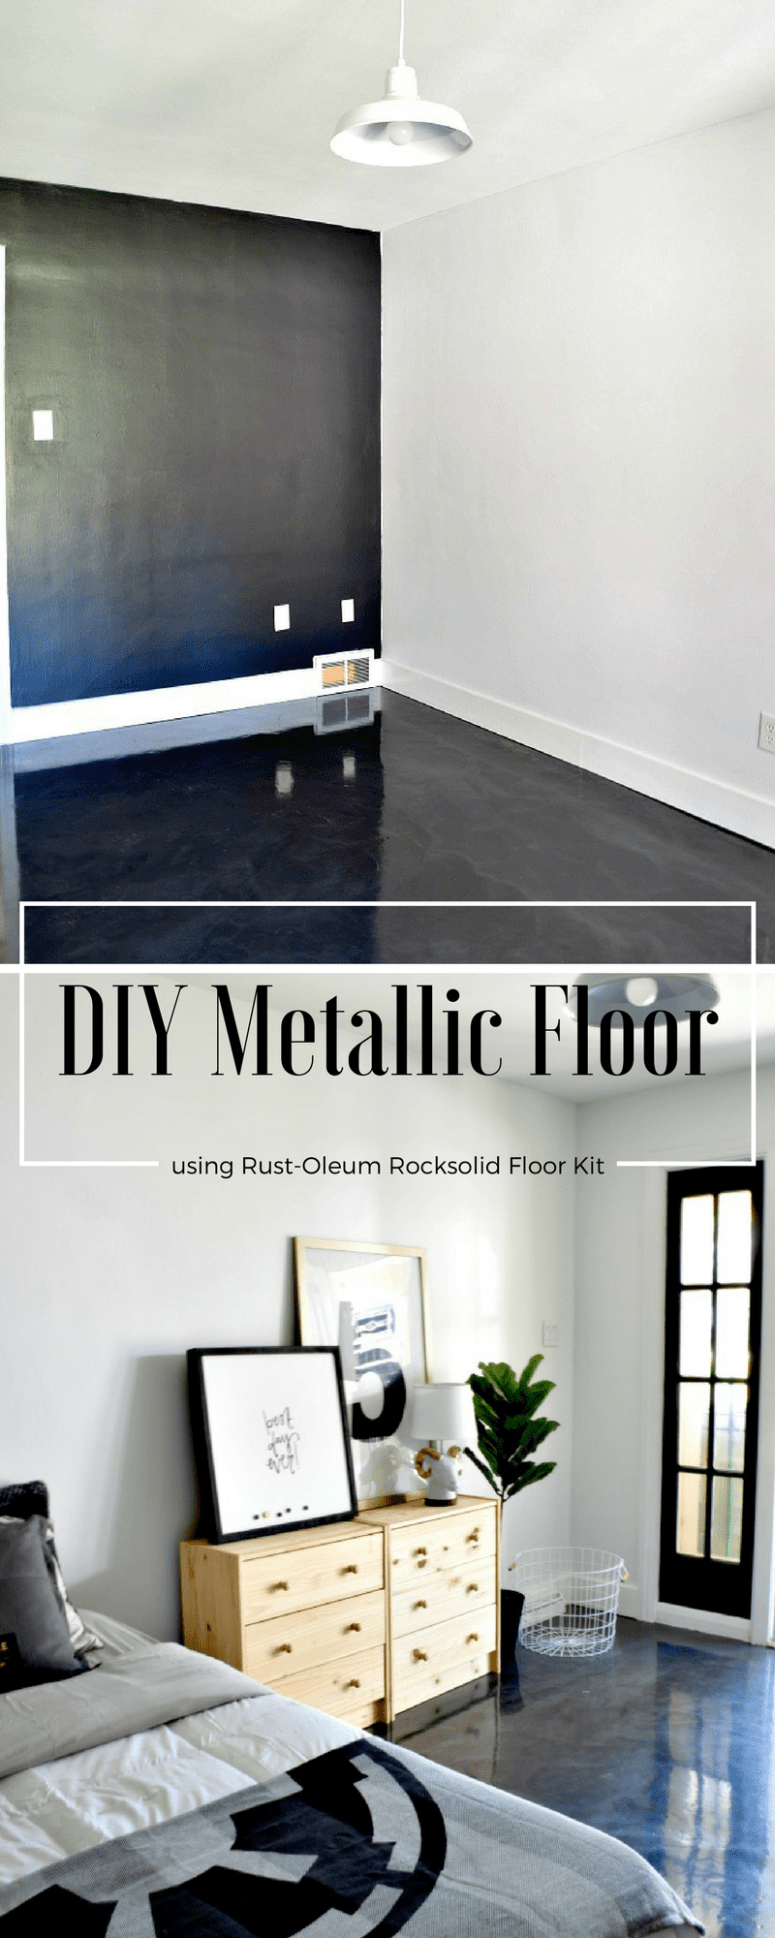 DIY Metallic Floor using Rusto-Oleum Rocksolid